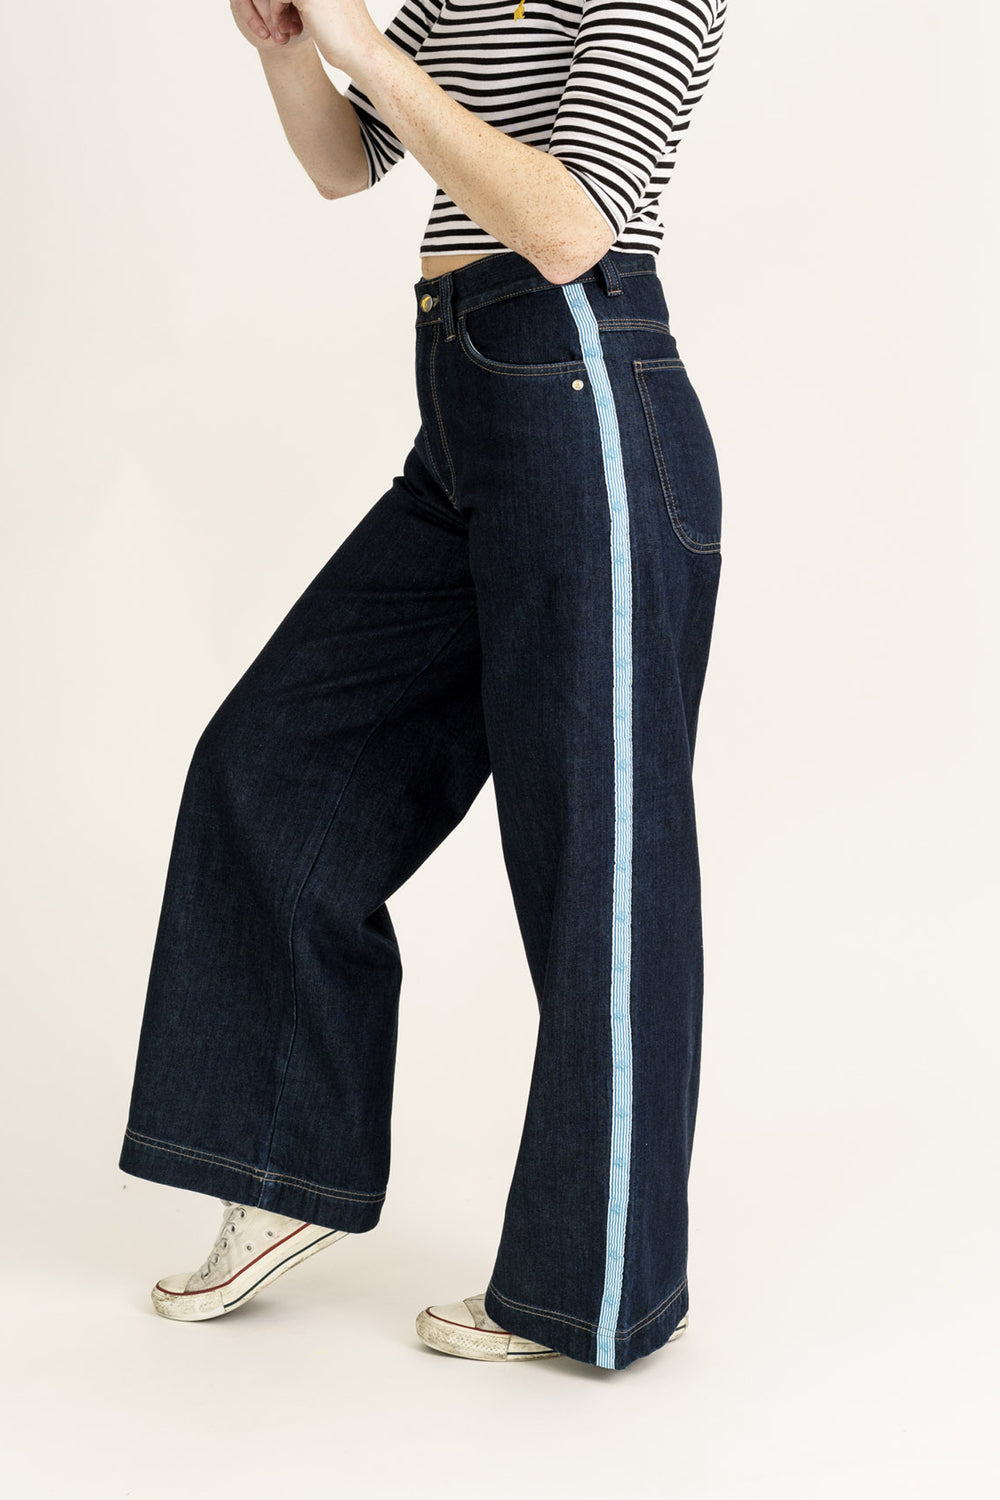 WIDE LEG // Organic Wide Leg Jeans in Rinse Wash with Tape - Monkee Genes Organic Jeans Denim - Women's Wide Fit Monkee Genes Official  Monkee Genes Official